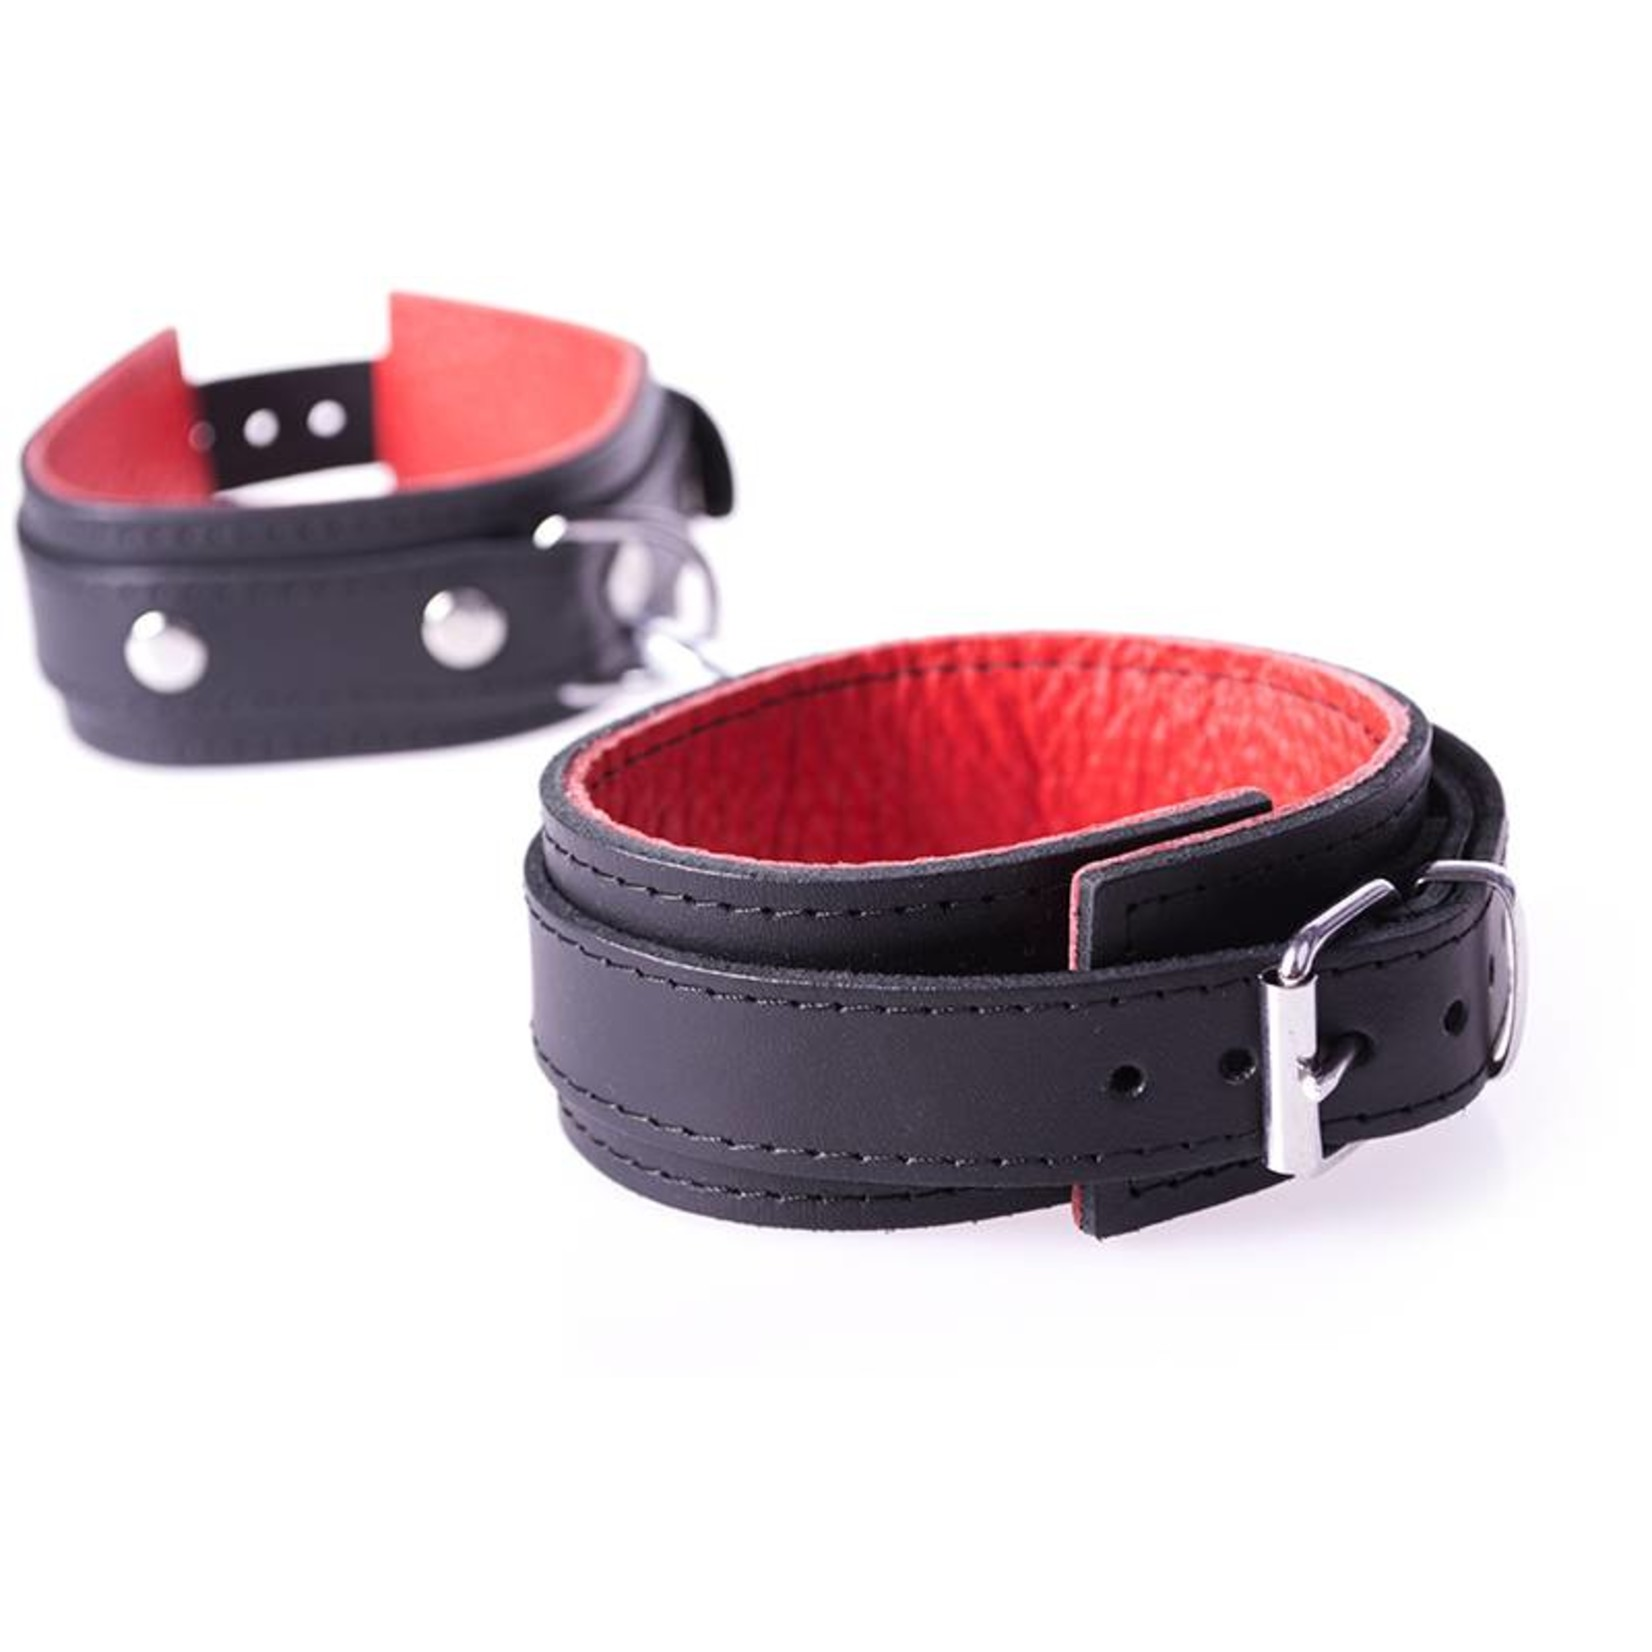 KIOTOS Leather Handcuffs Basic - Red